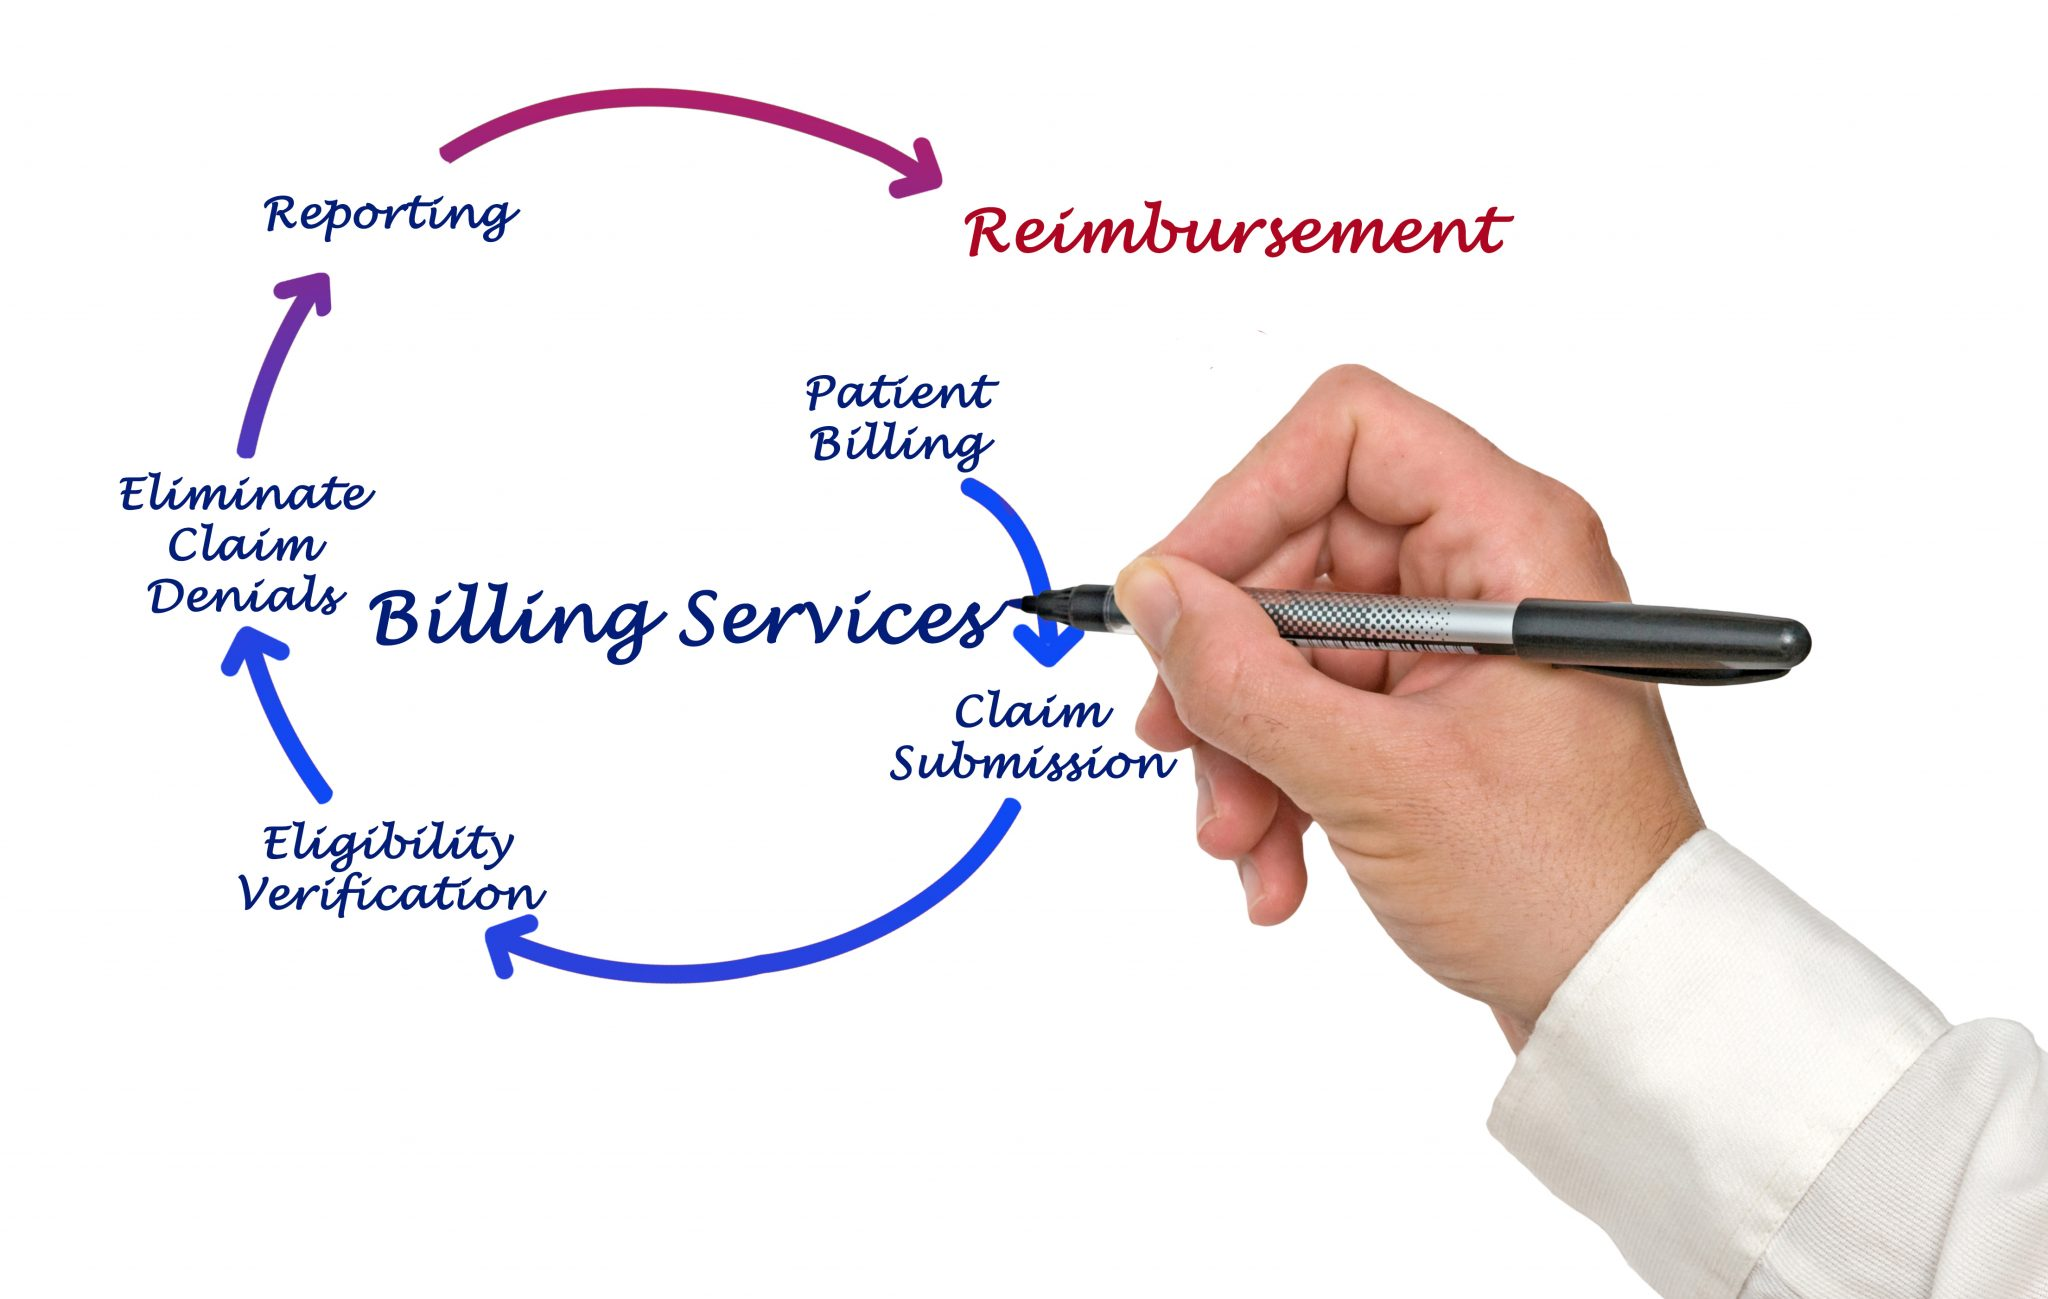 leader in Health Care billing and revenue cycle management